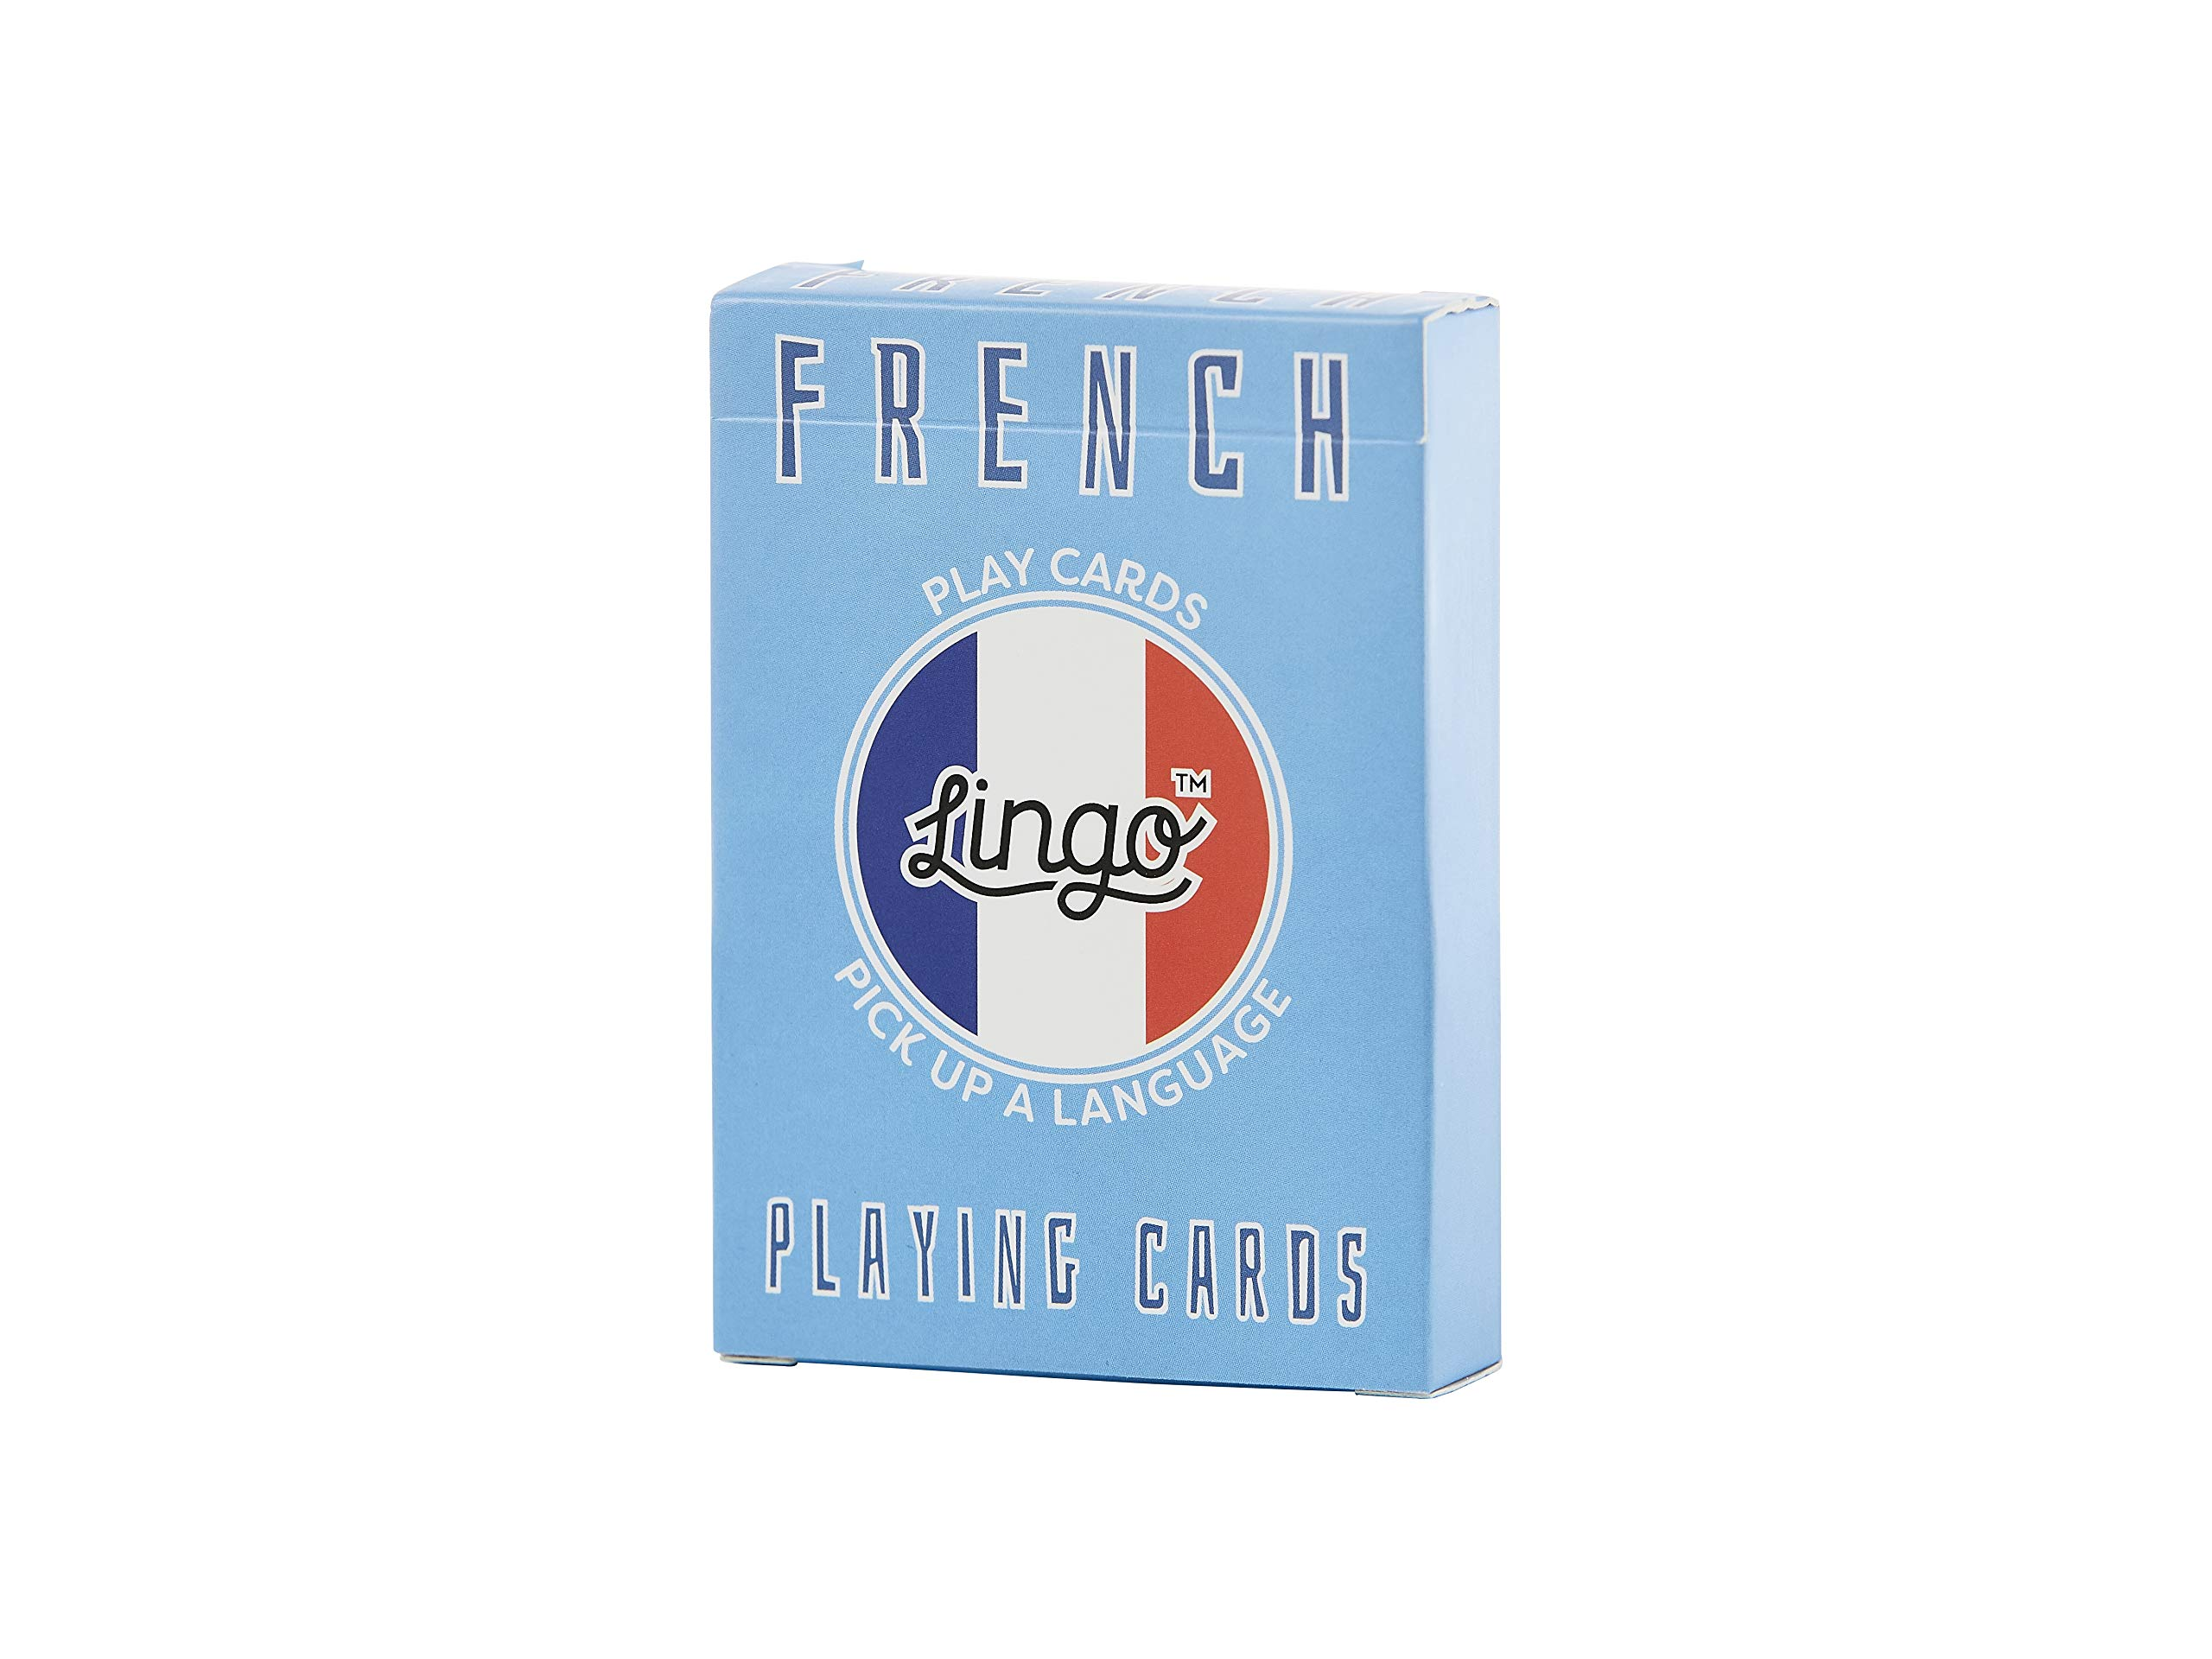 French- Lingo Playing Cards | Language Learning Game Set | Fun Visual Flashcard Deck To Increase Vocabulary and Pronunciation Skills - 54 Useful Phrases